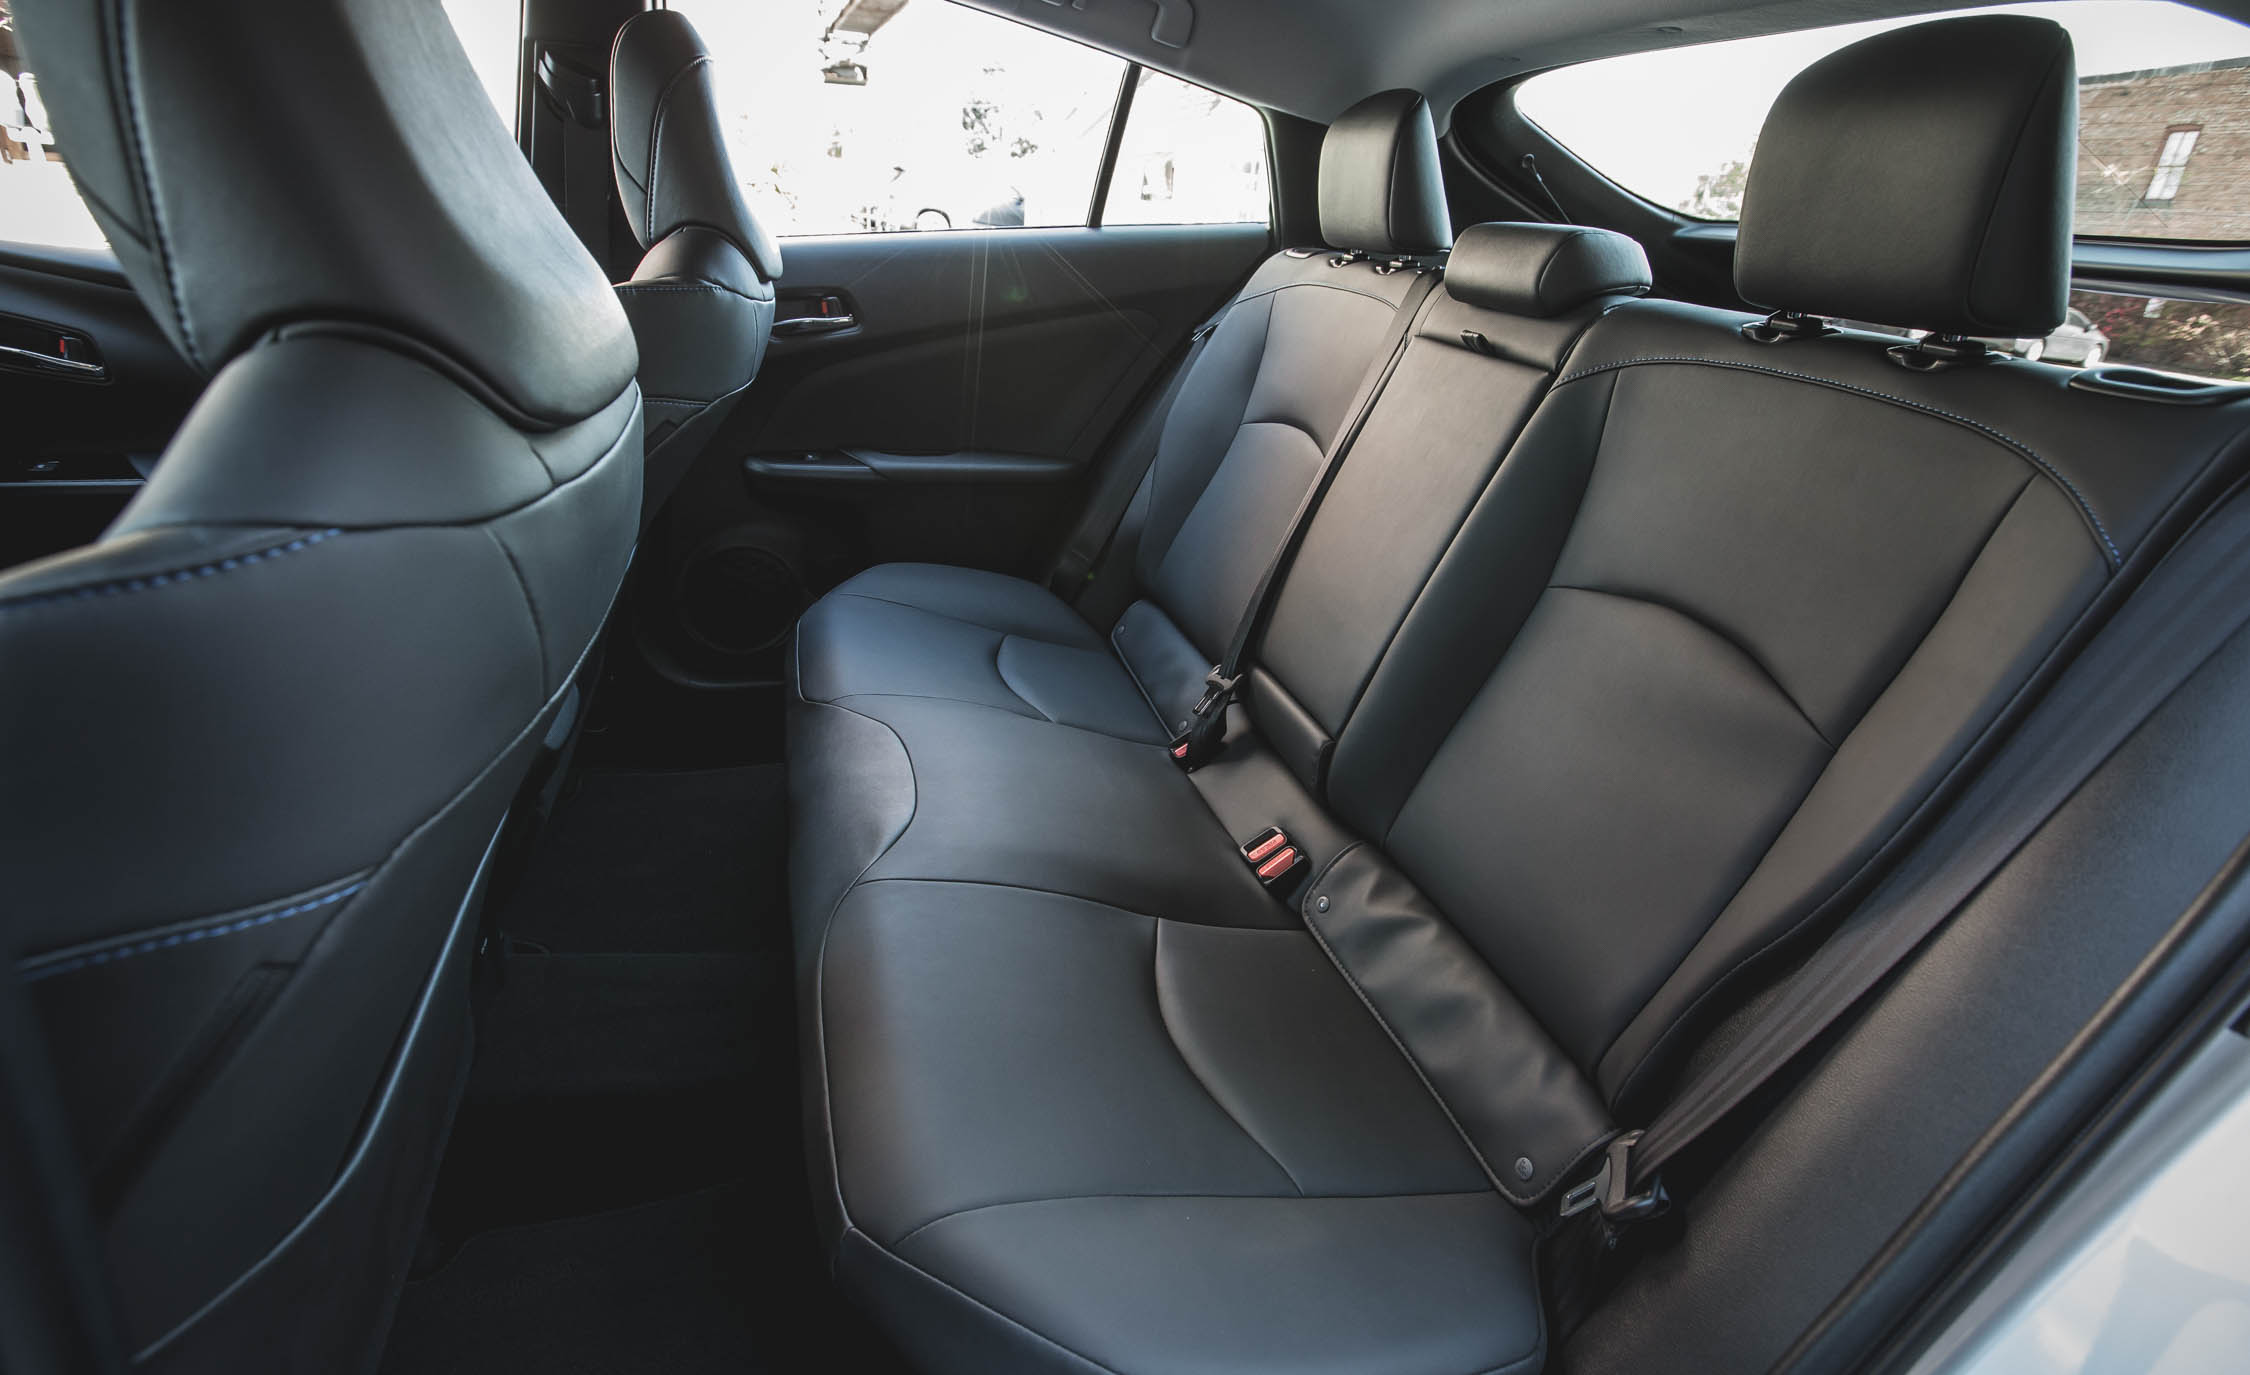 2017 Toyota Prius Interior Seats Rear (Photo 46 of 64)